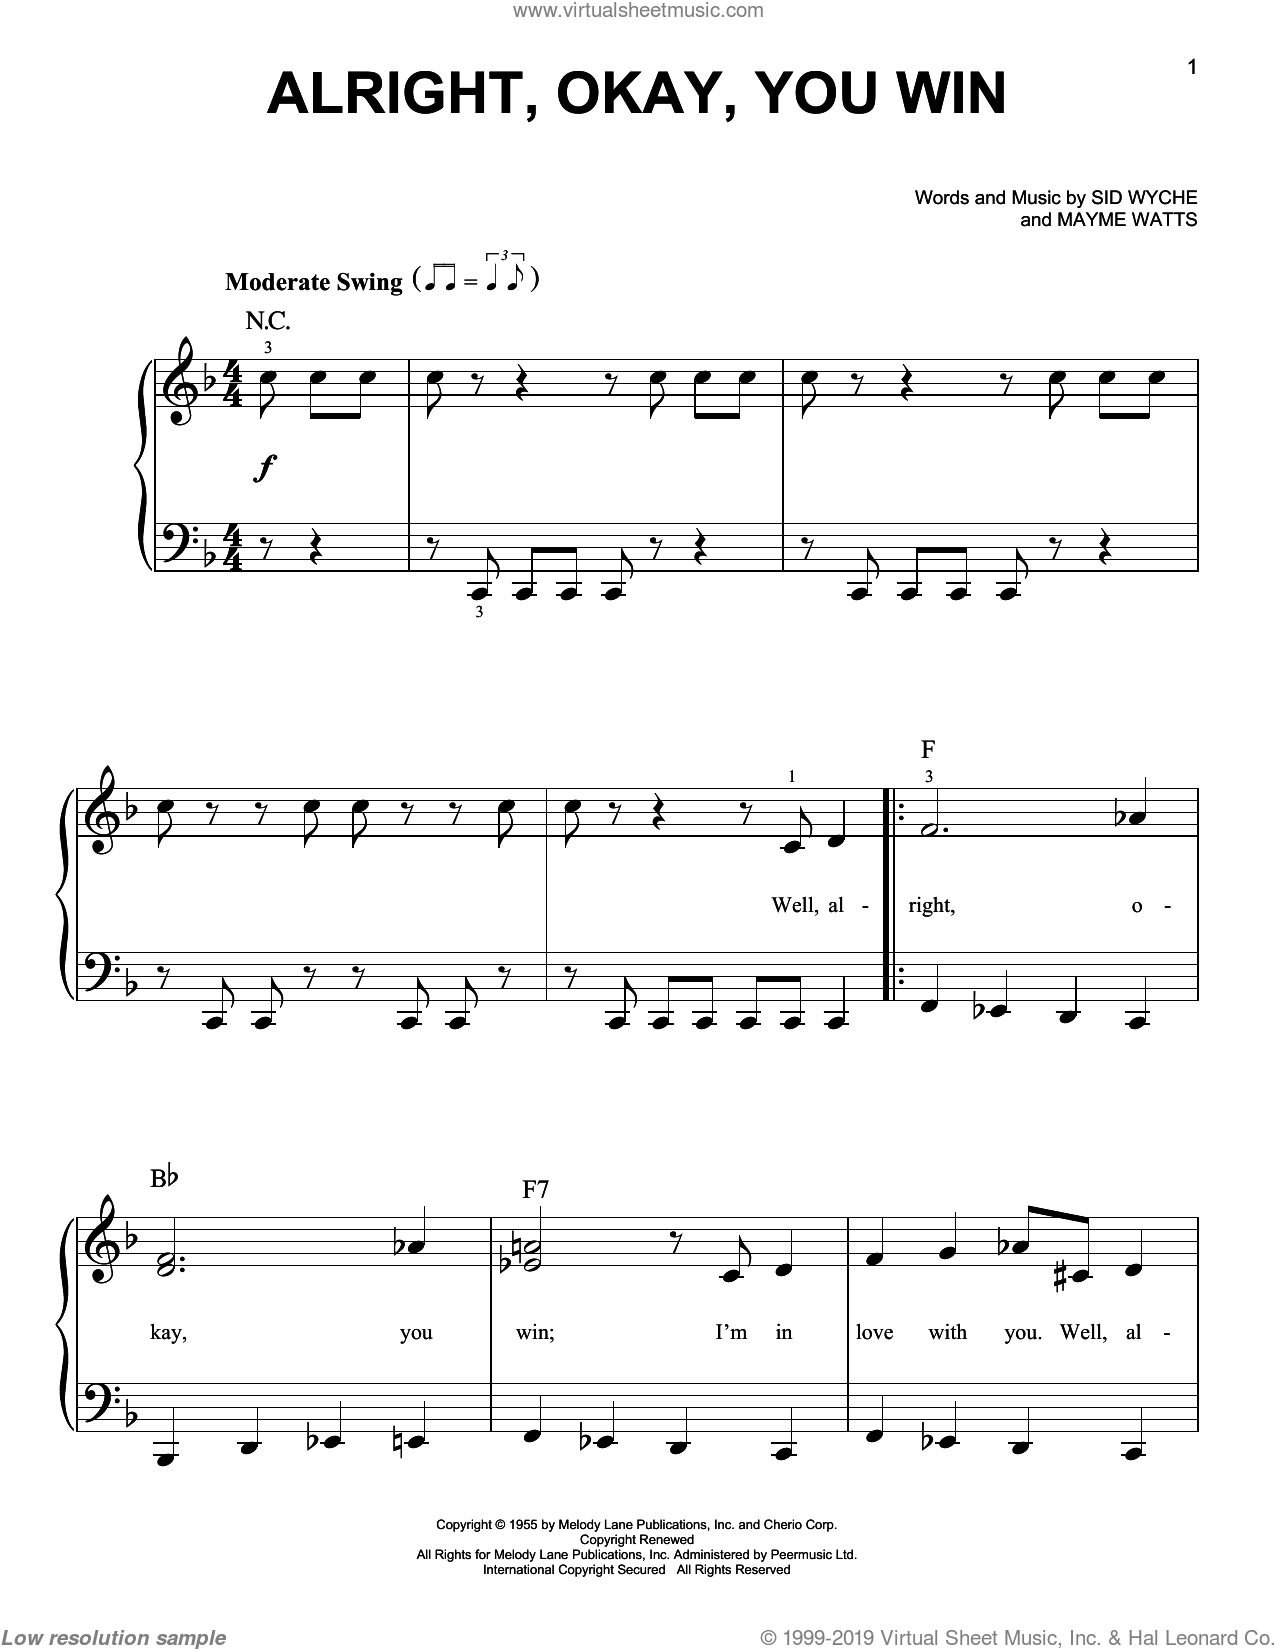 Alright, Okay, You Win sheet music for piano solo by Peggy Lee, Mayme Watts and Sid Wyche, easy skill level